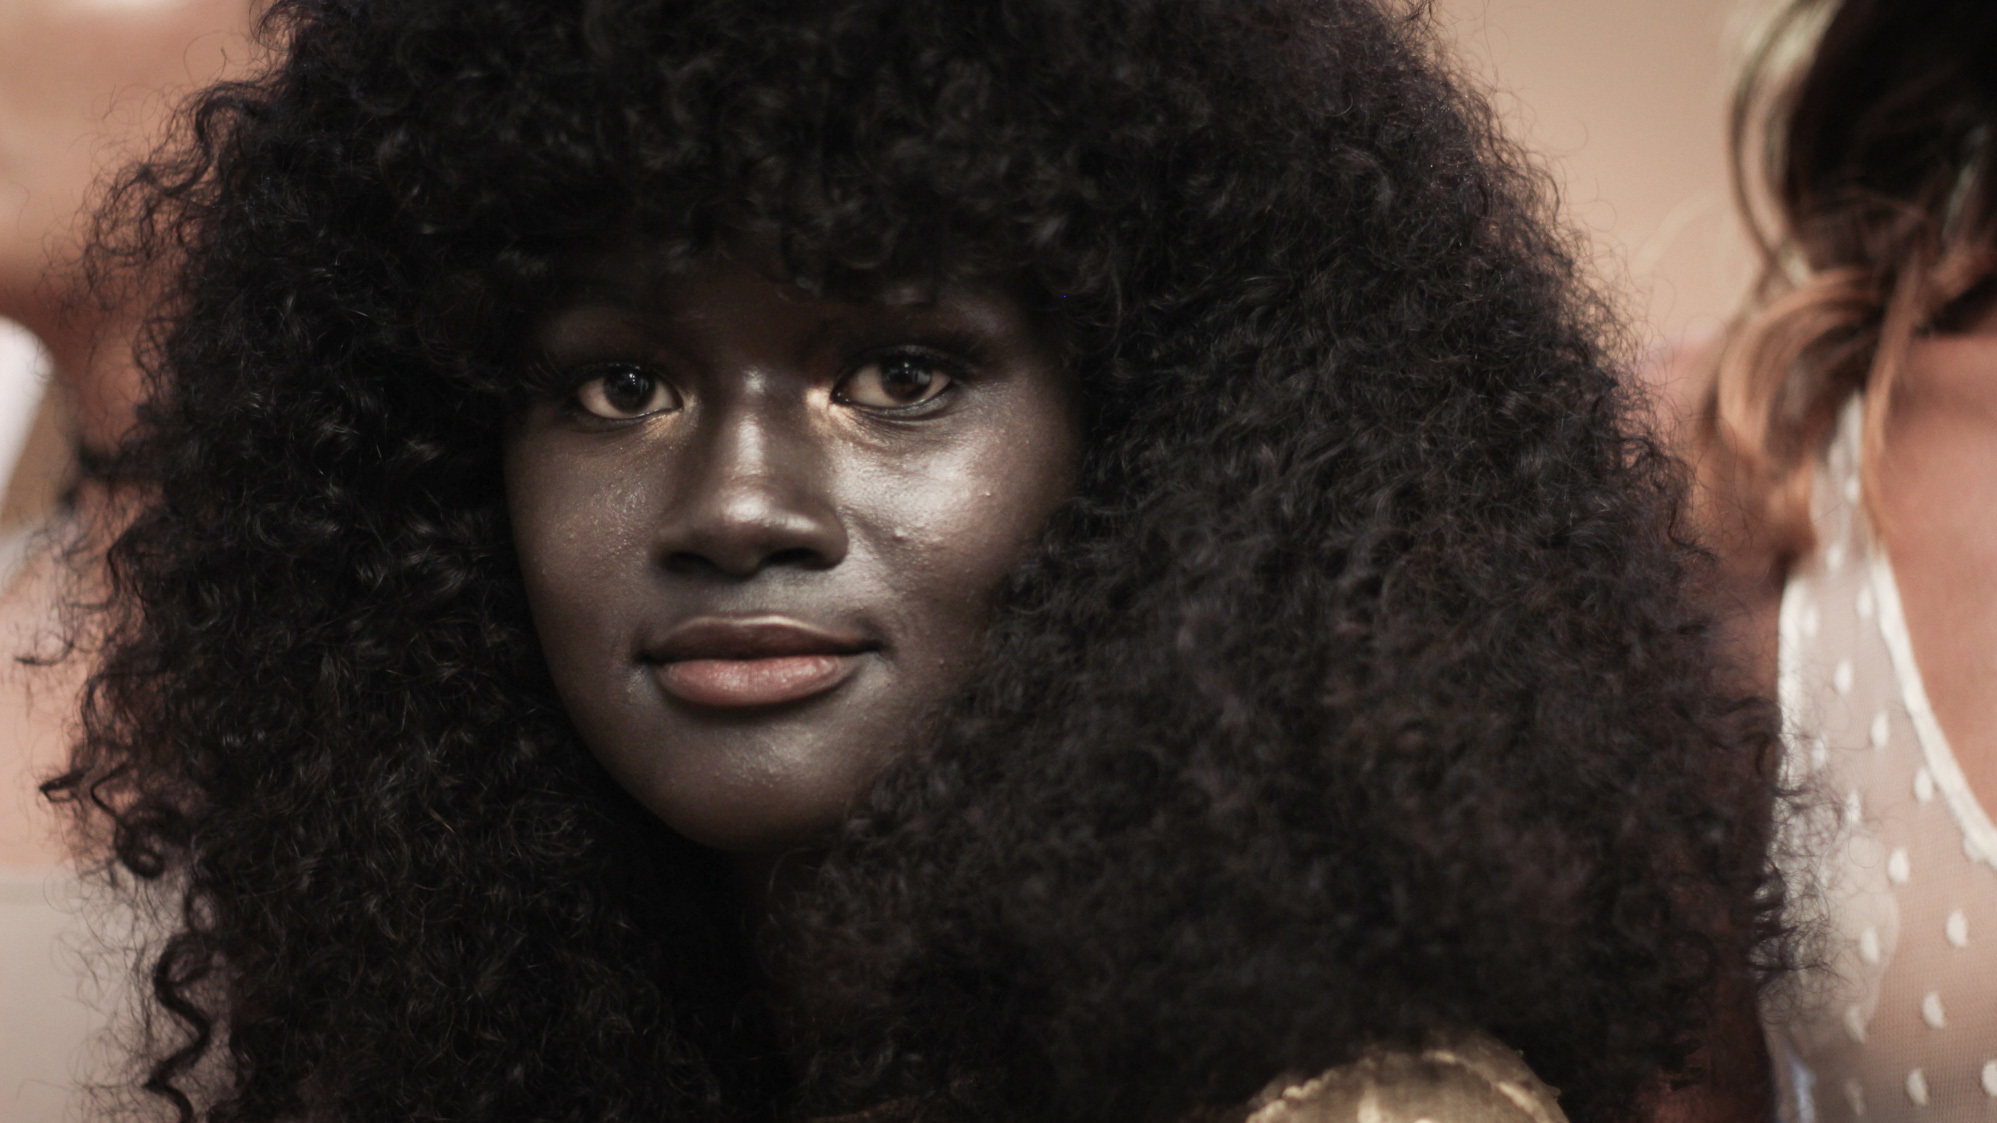 Senegalese Model And Instagram Star Khoudia Diop Is Proud Of Her Dark Skin Goats And Soda Npr